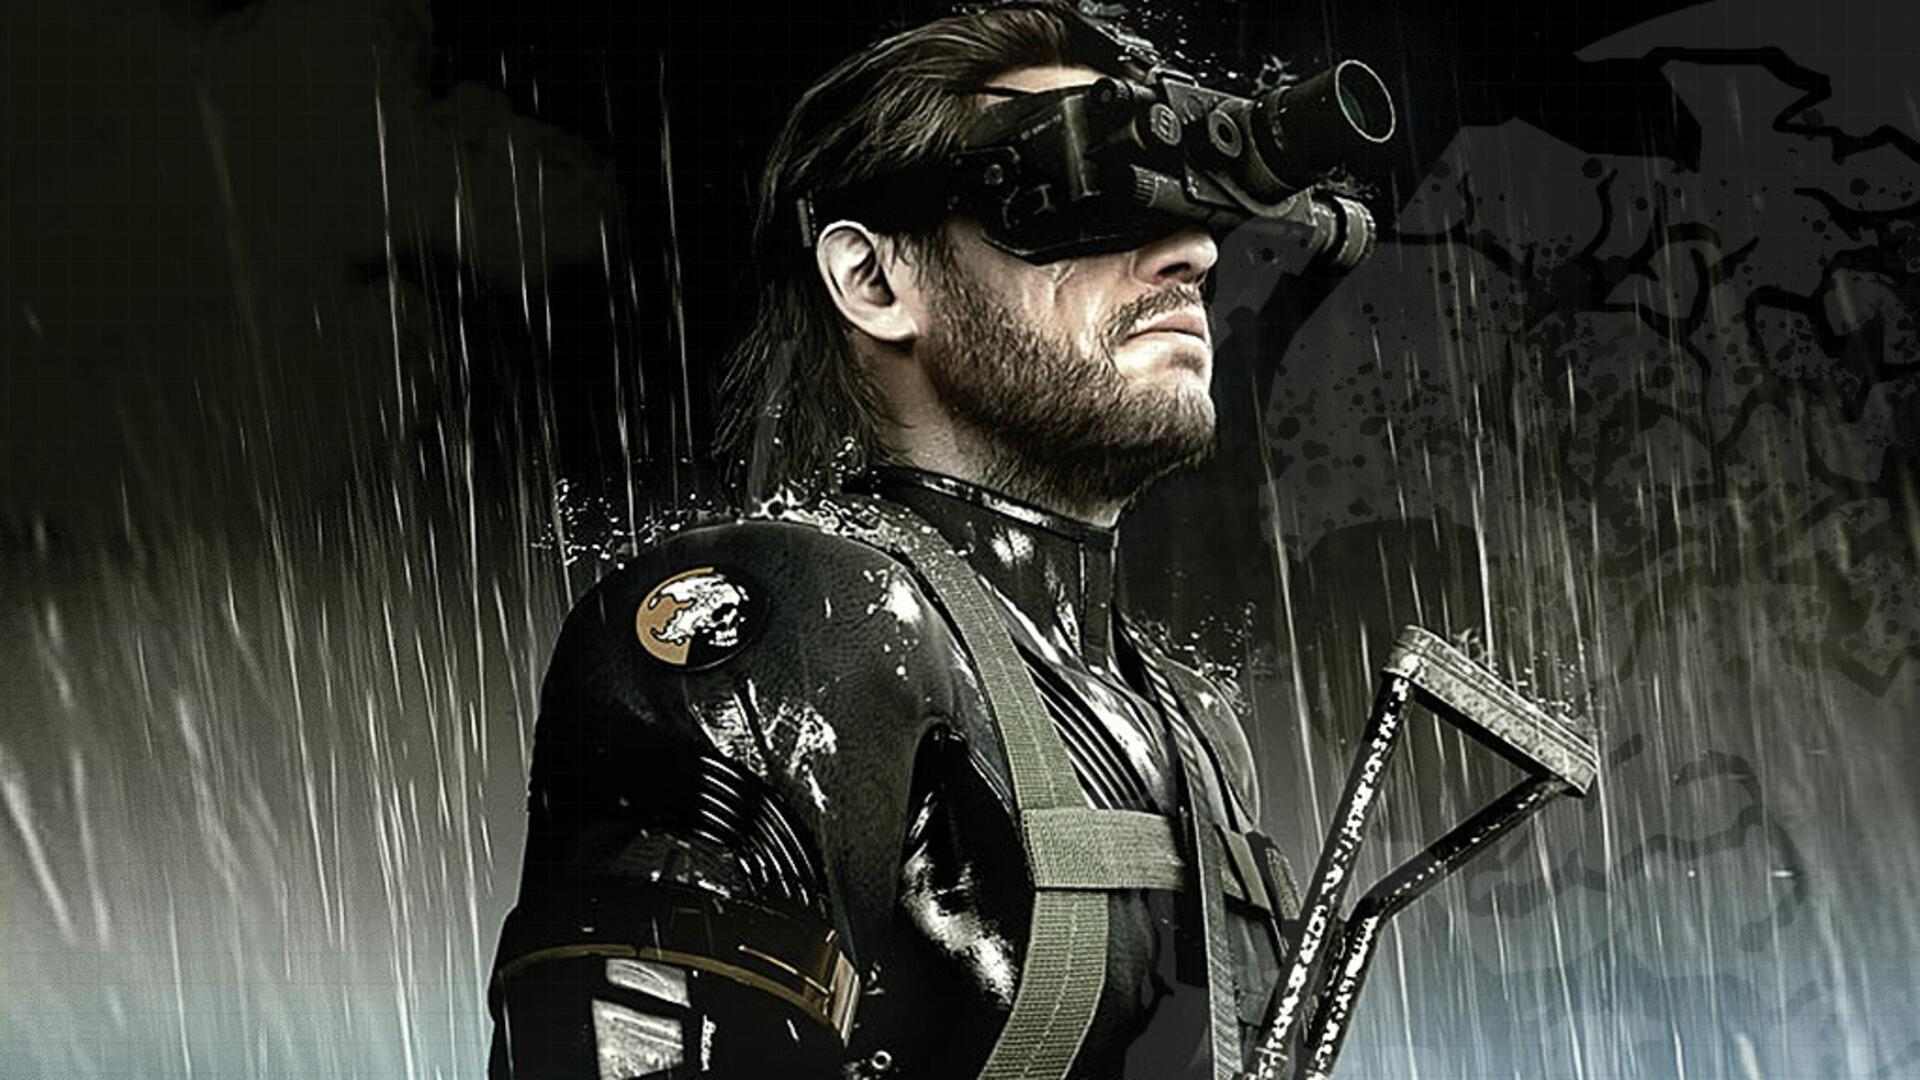 Ground Zeroes' Main Story is Two Hours Long [UPDATED]